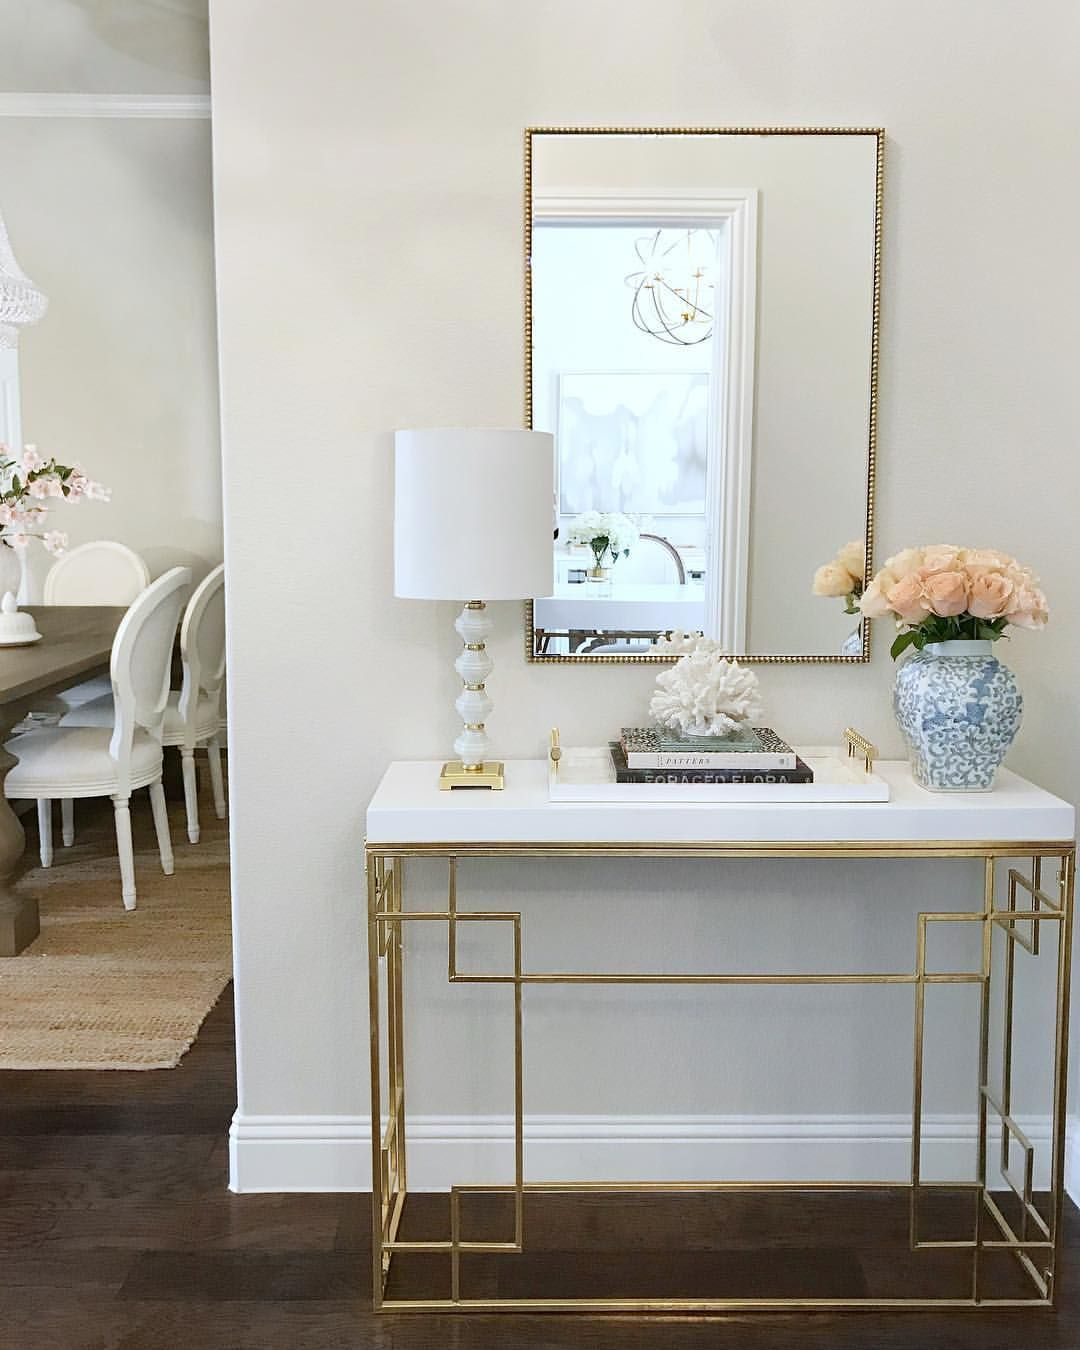 Entryway Decor Entry White And Gold Console Table Gold Rectangular Motor Target Gold Opal Modern Entry Table Console Table Decorating Entryway Table Decor